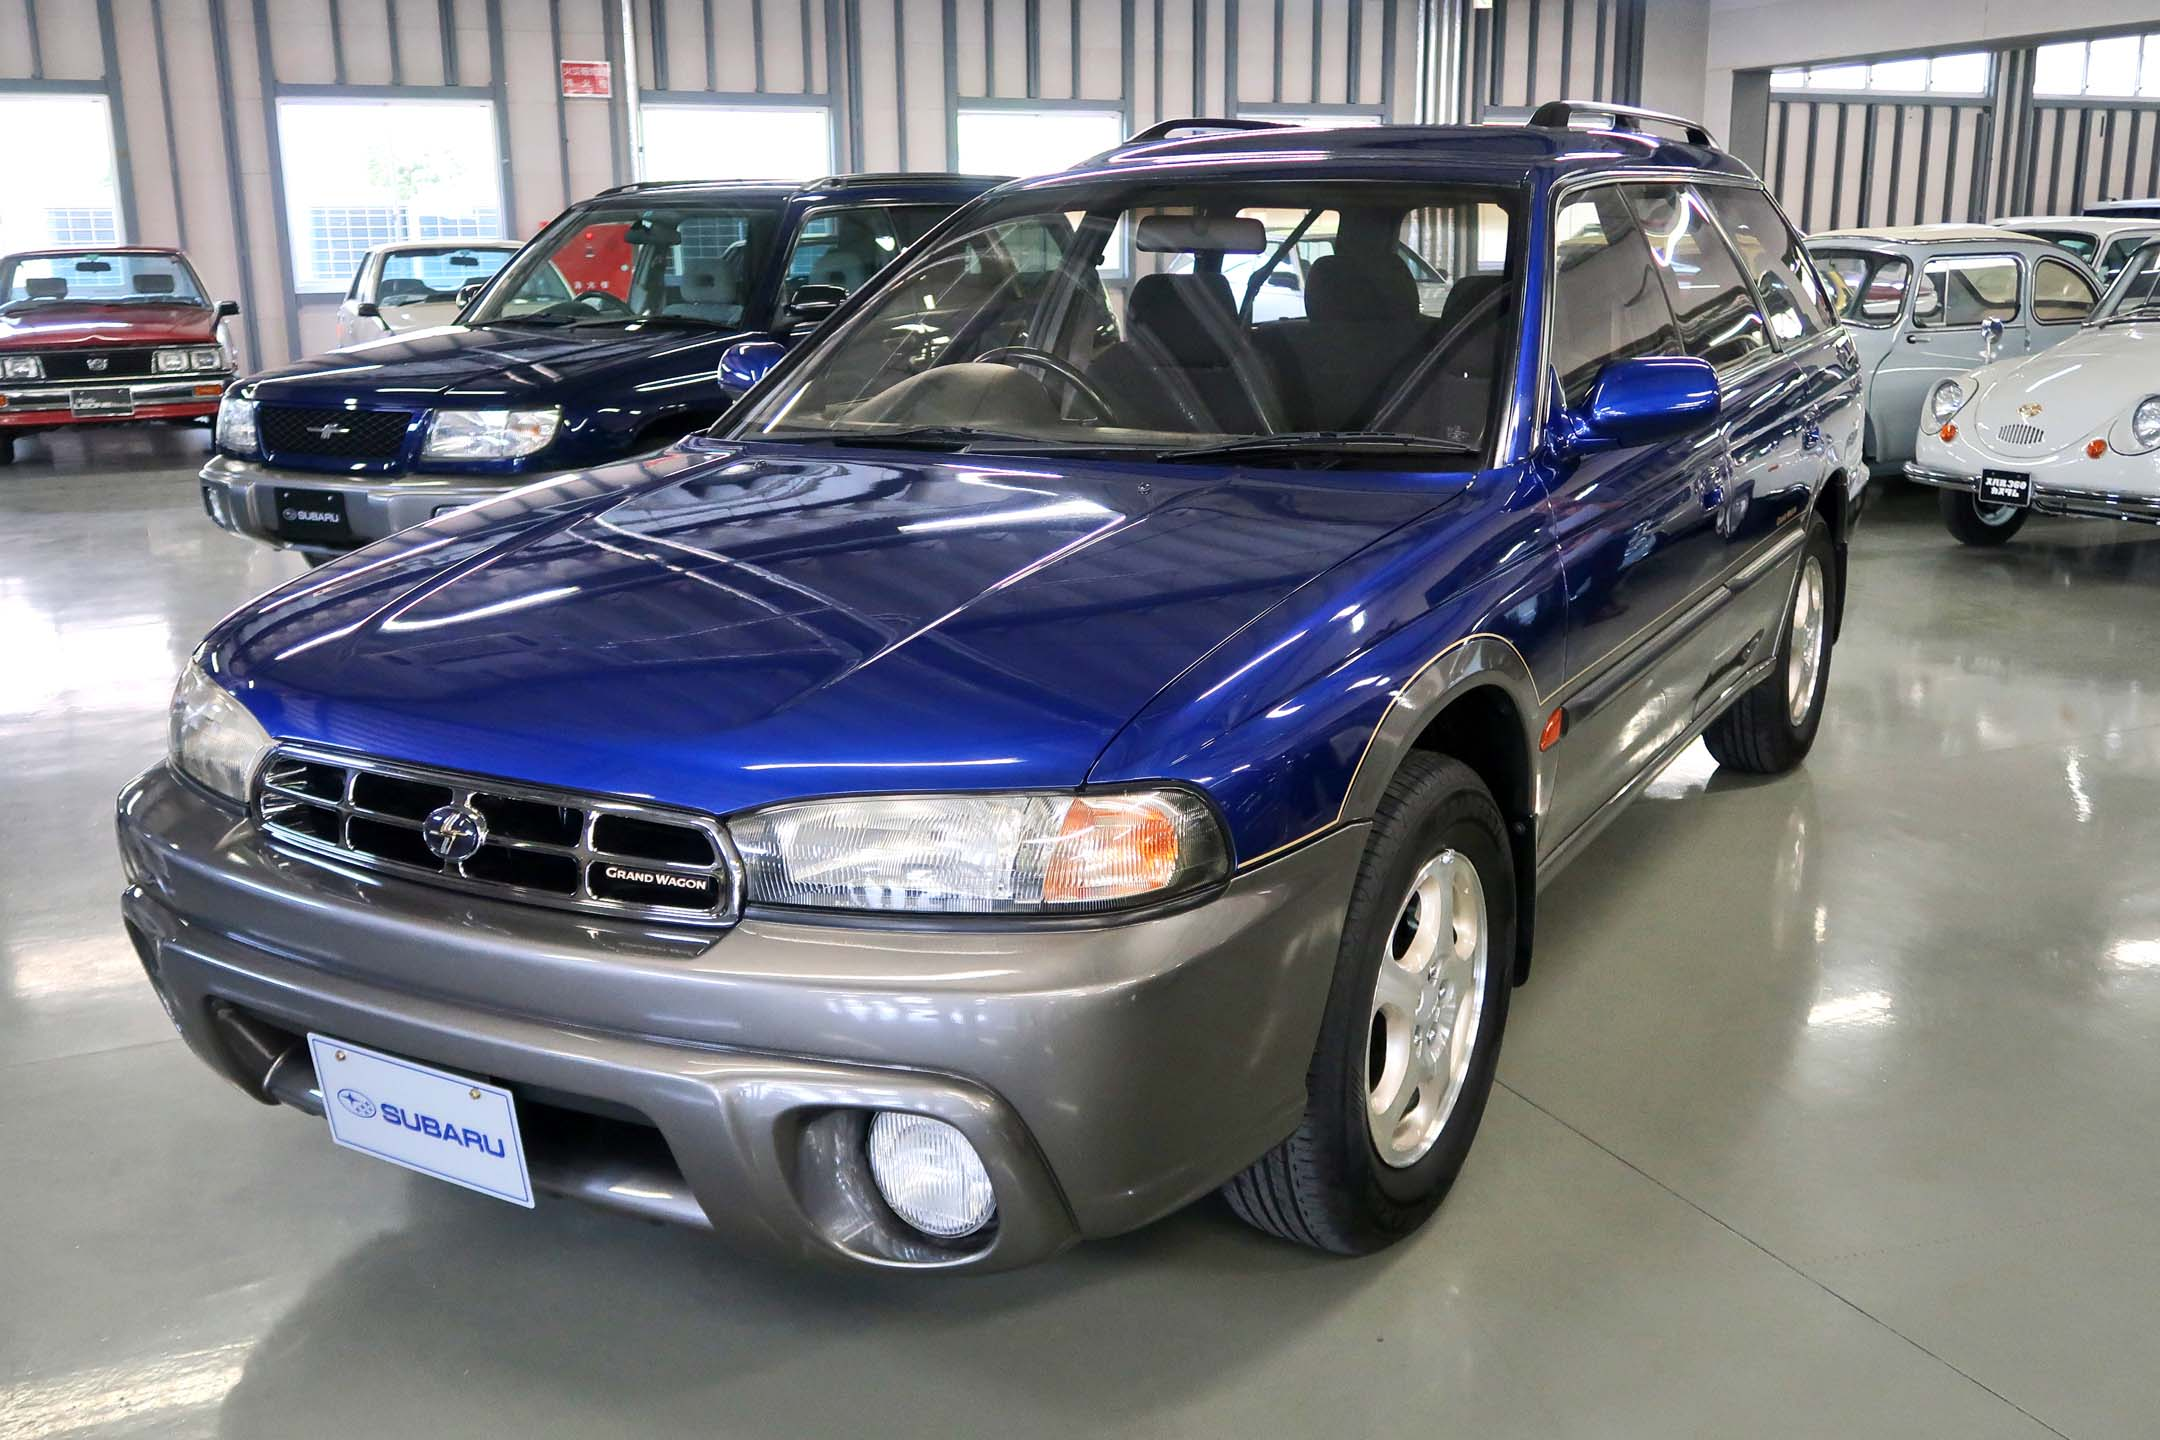 The Legacy Grand Wagon was named the Outback for overseas markets